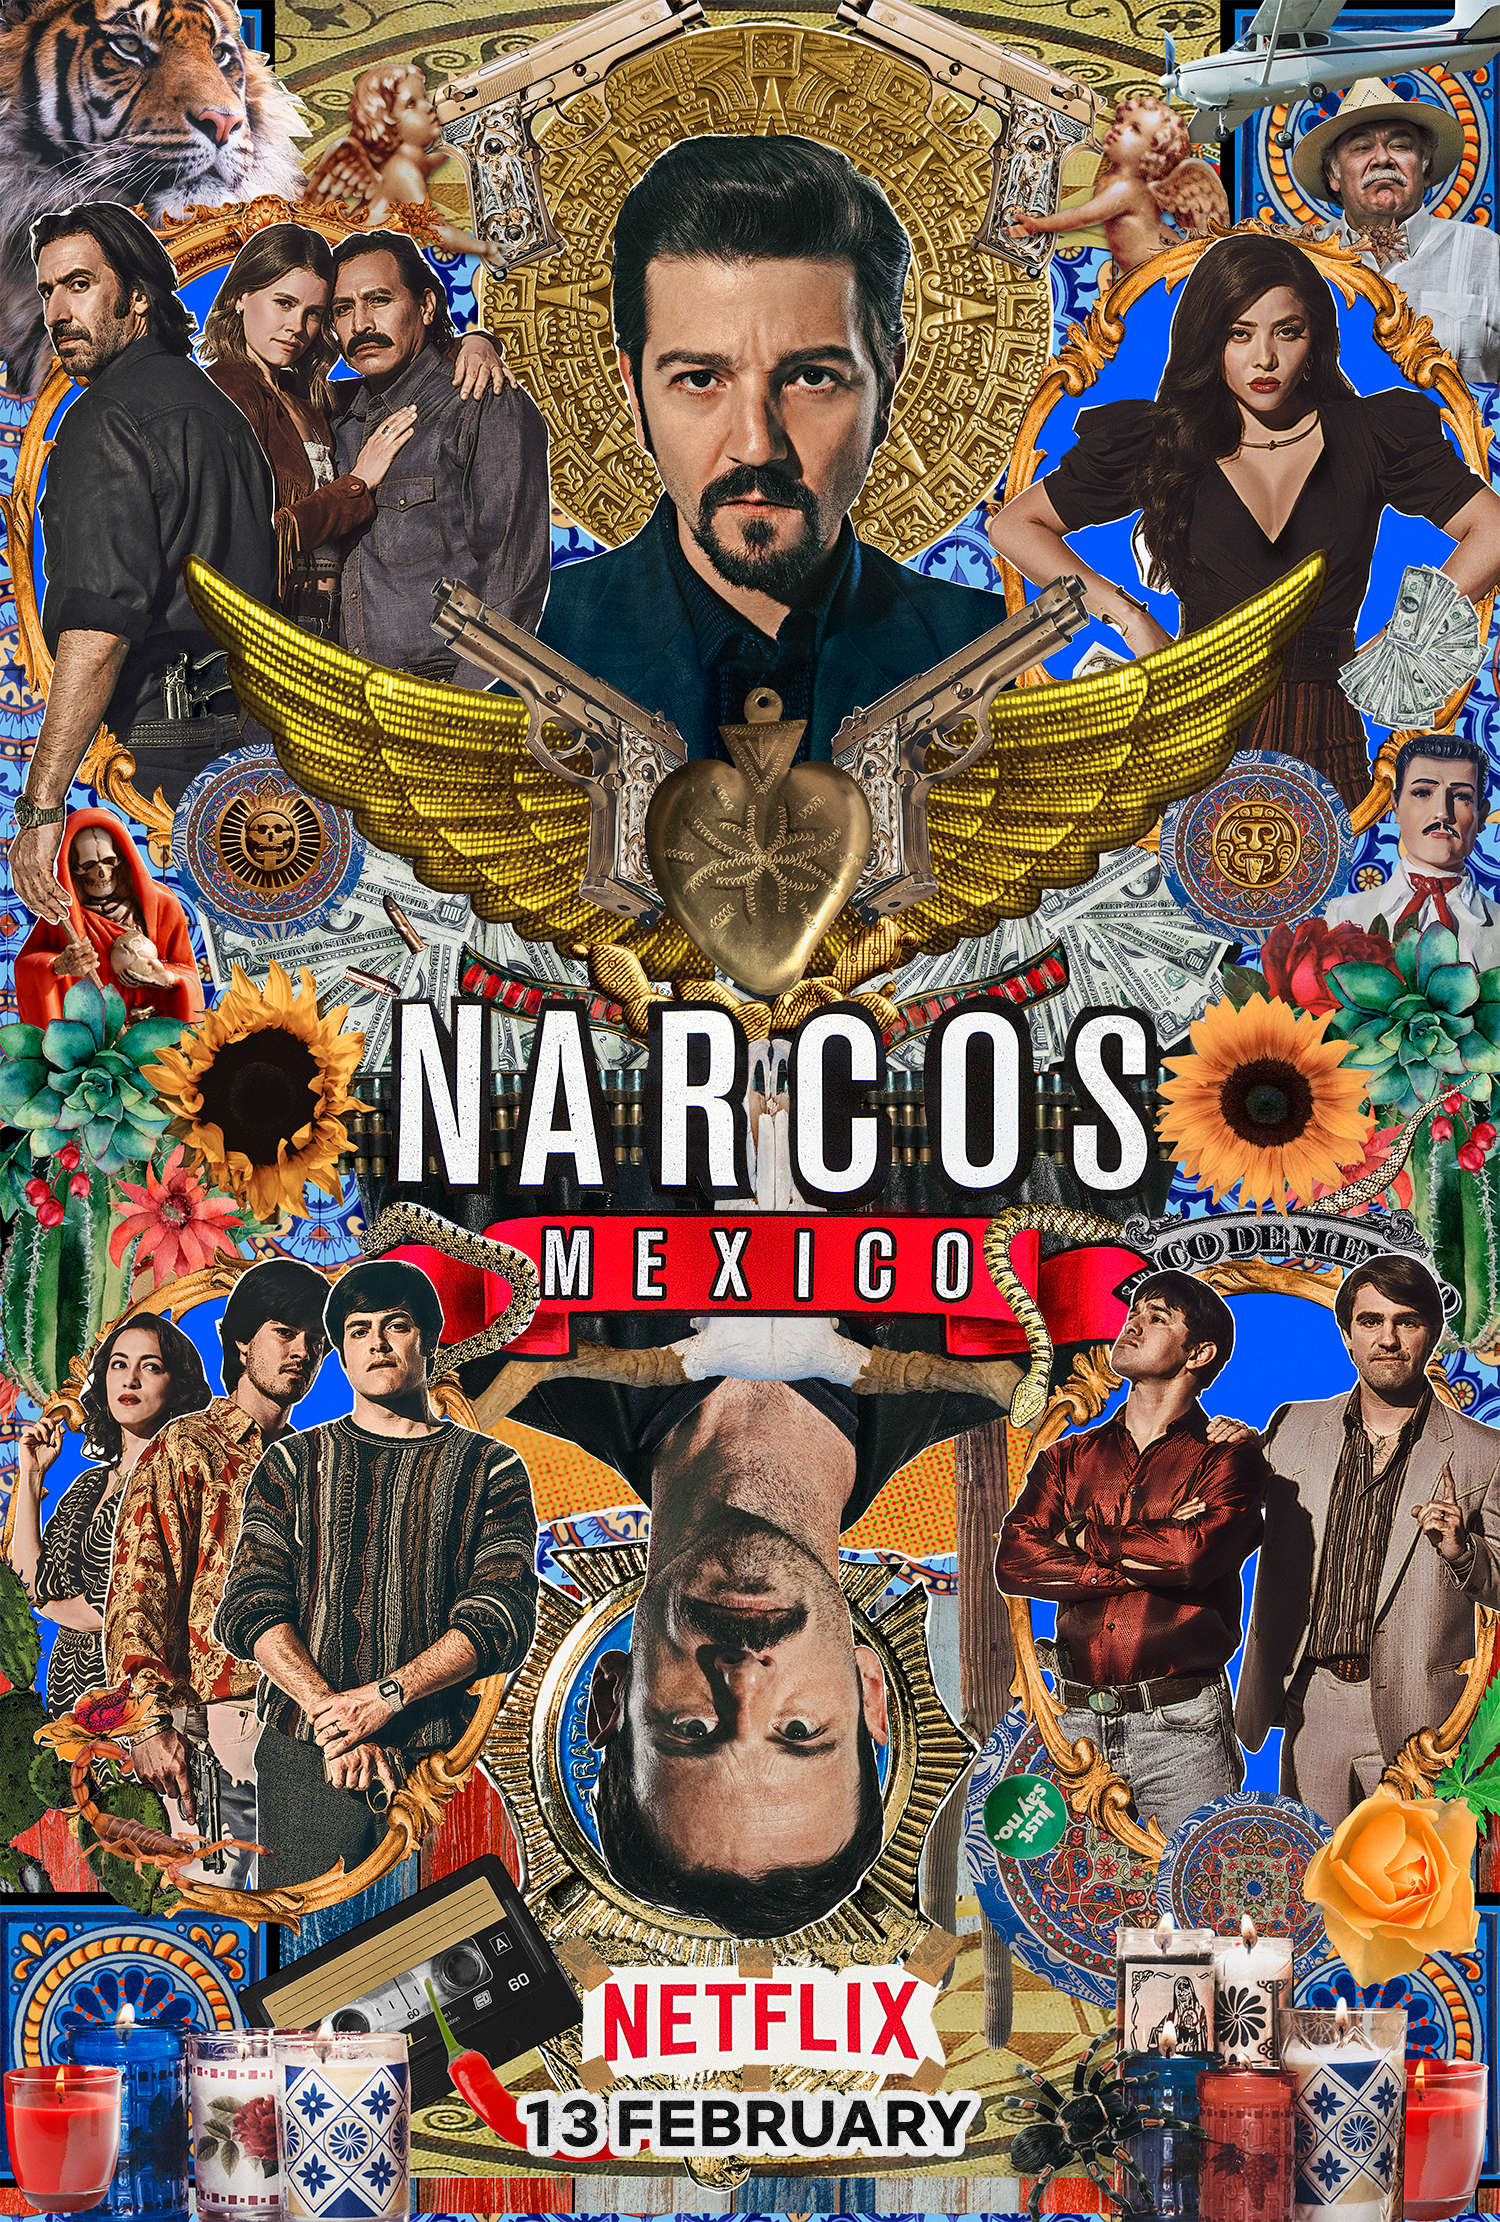 Narcos Mexico Season2 S02 720p NFWEB-DL